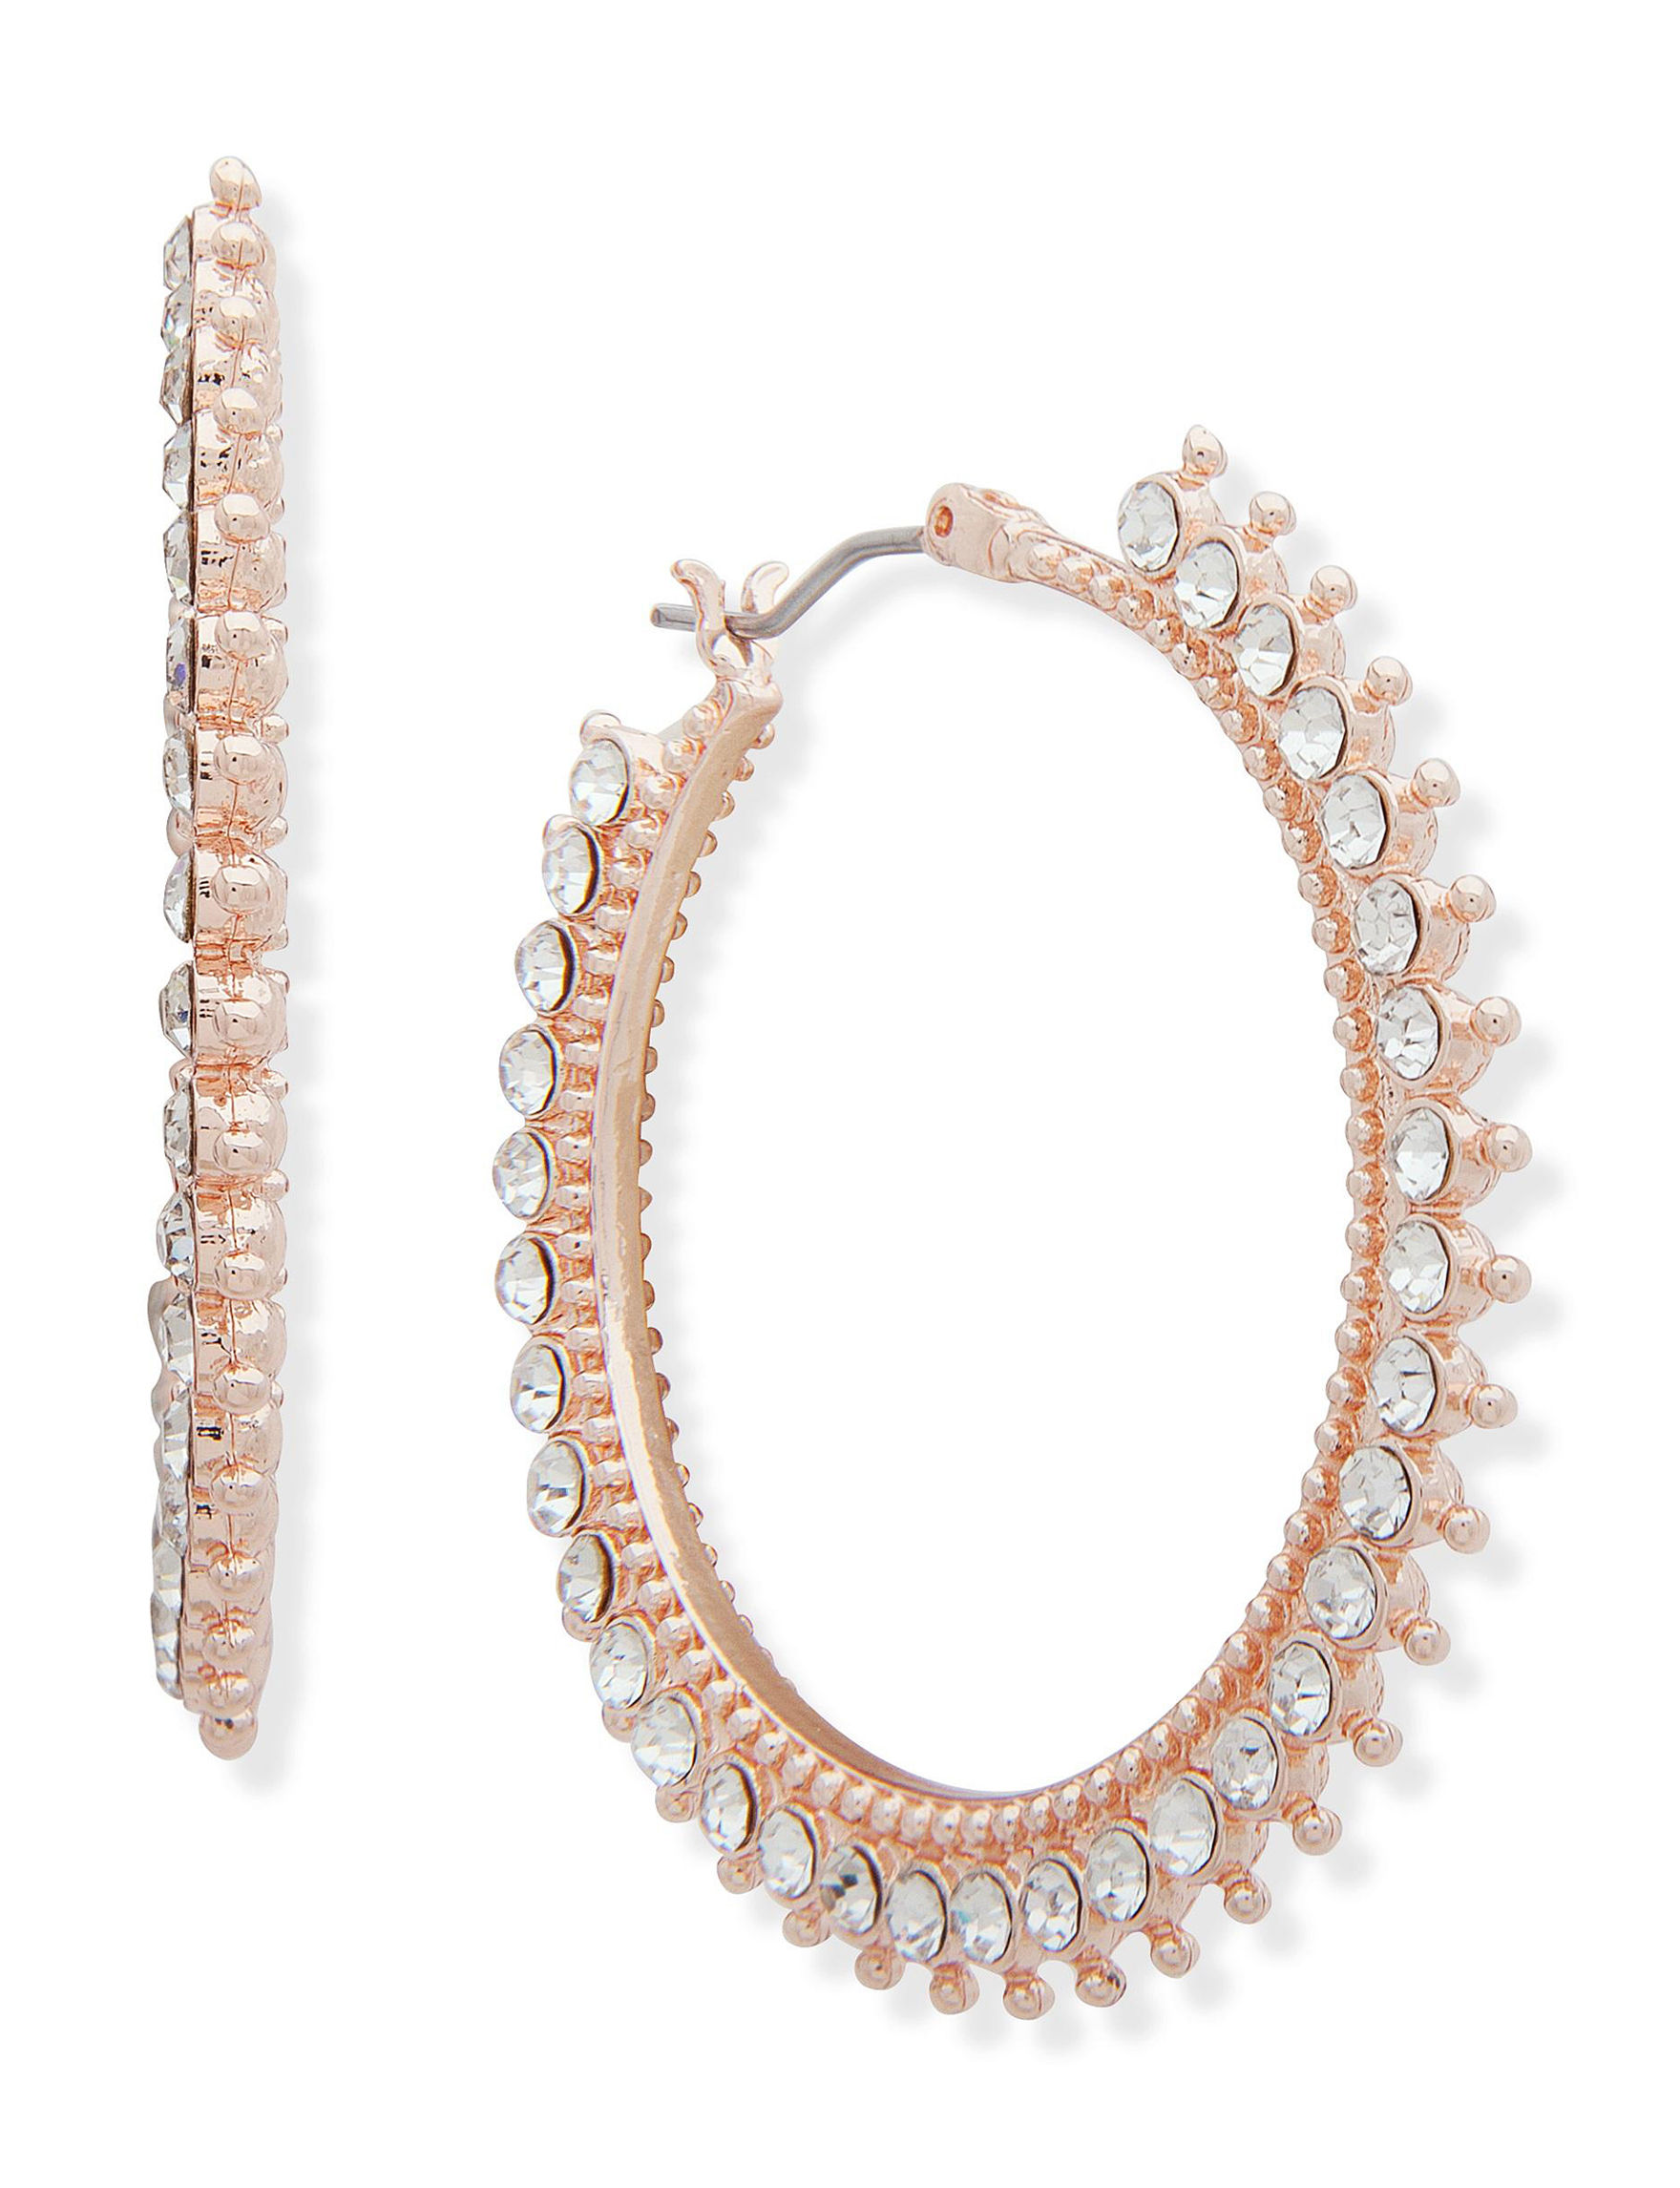 You're Invited Rose Gold Hoops Earrings Fashion Jewelry